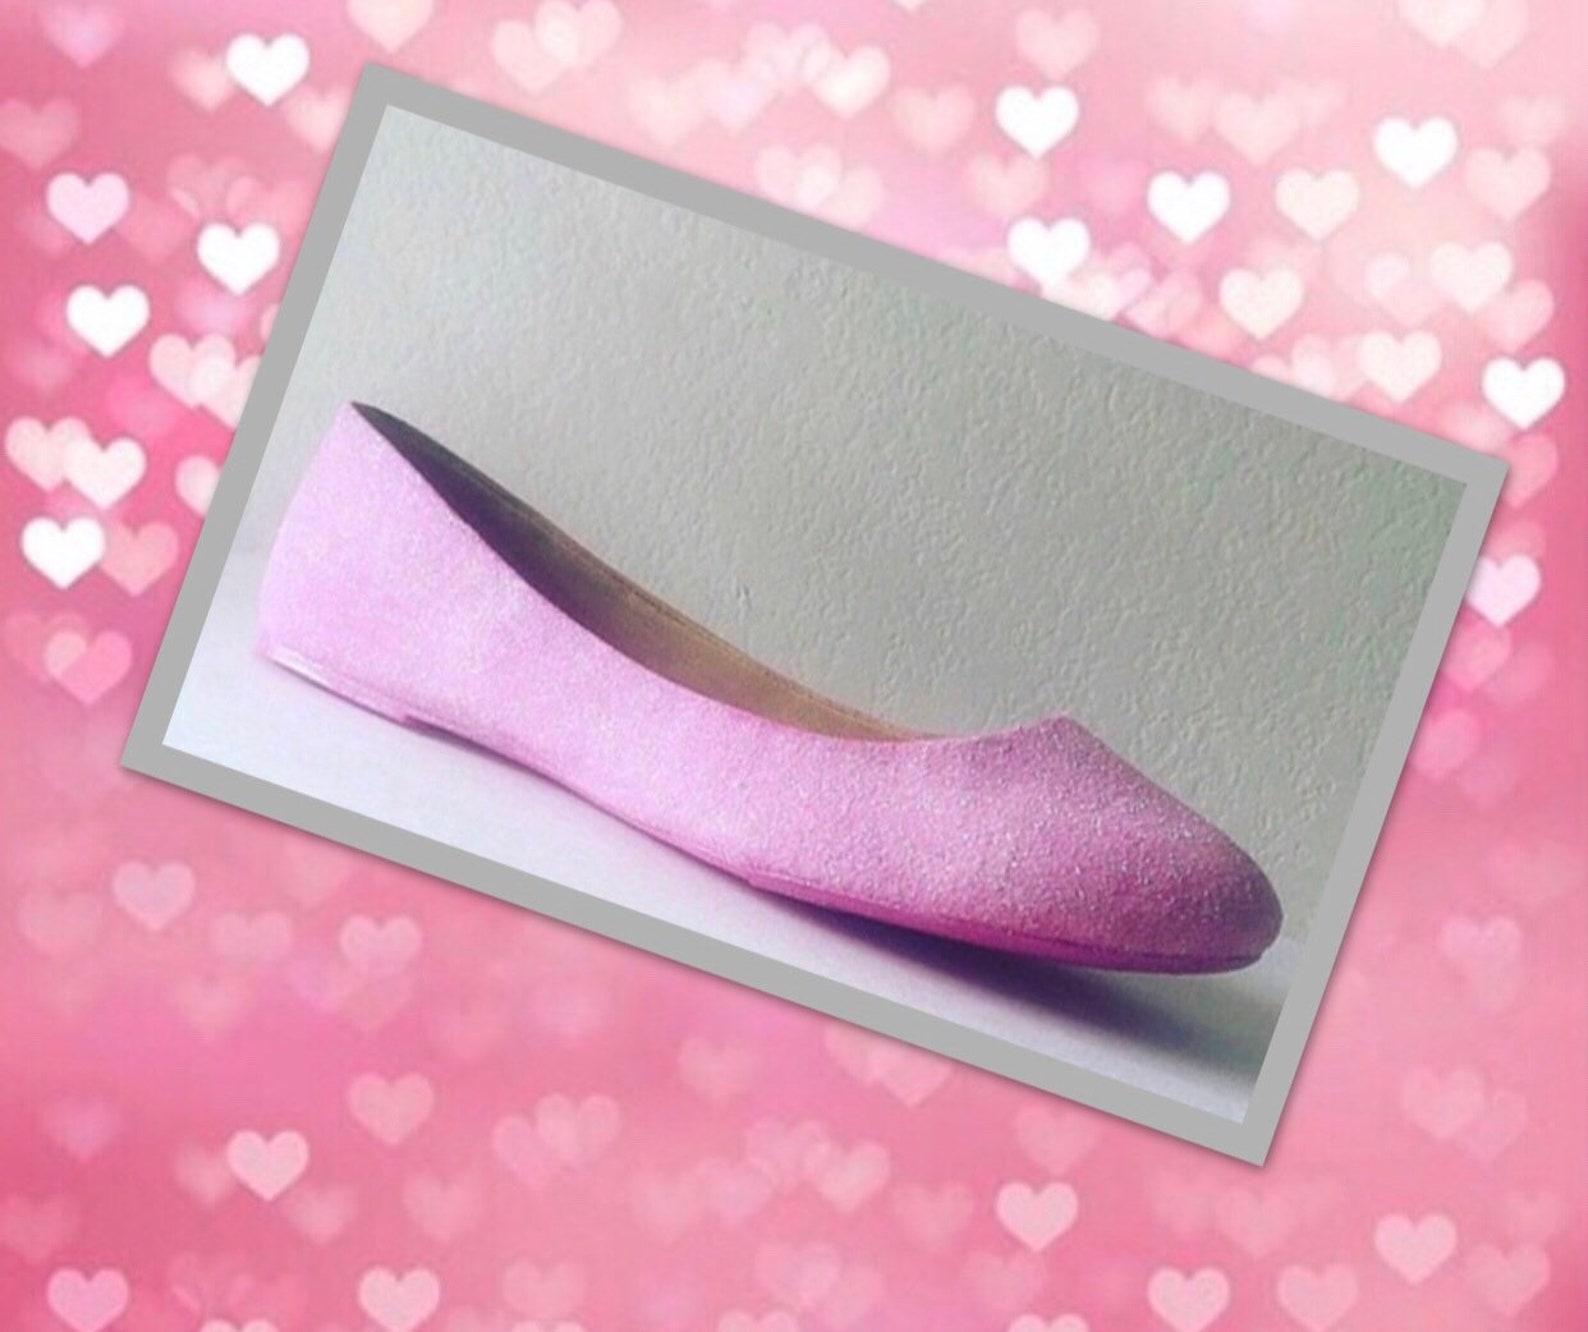 ballet flats pink women's custom glittered bridal flats *free u.s. shipping* jco.customs by kitty paws shoes